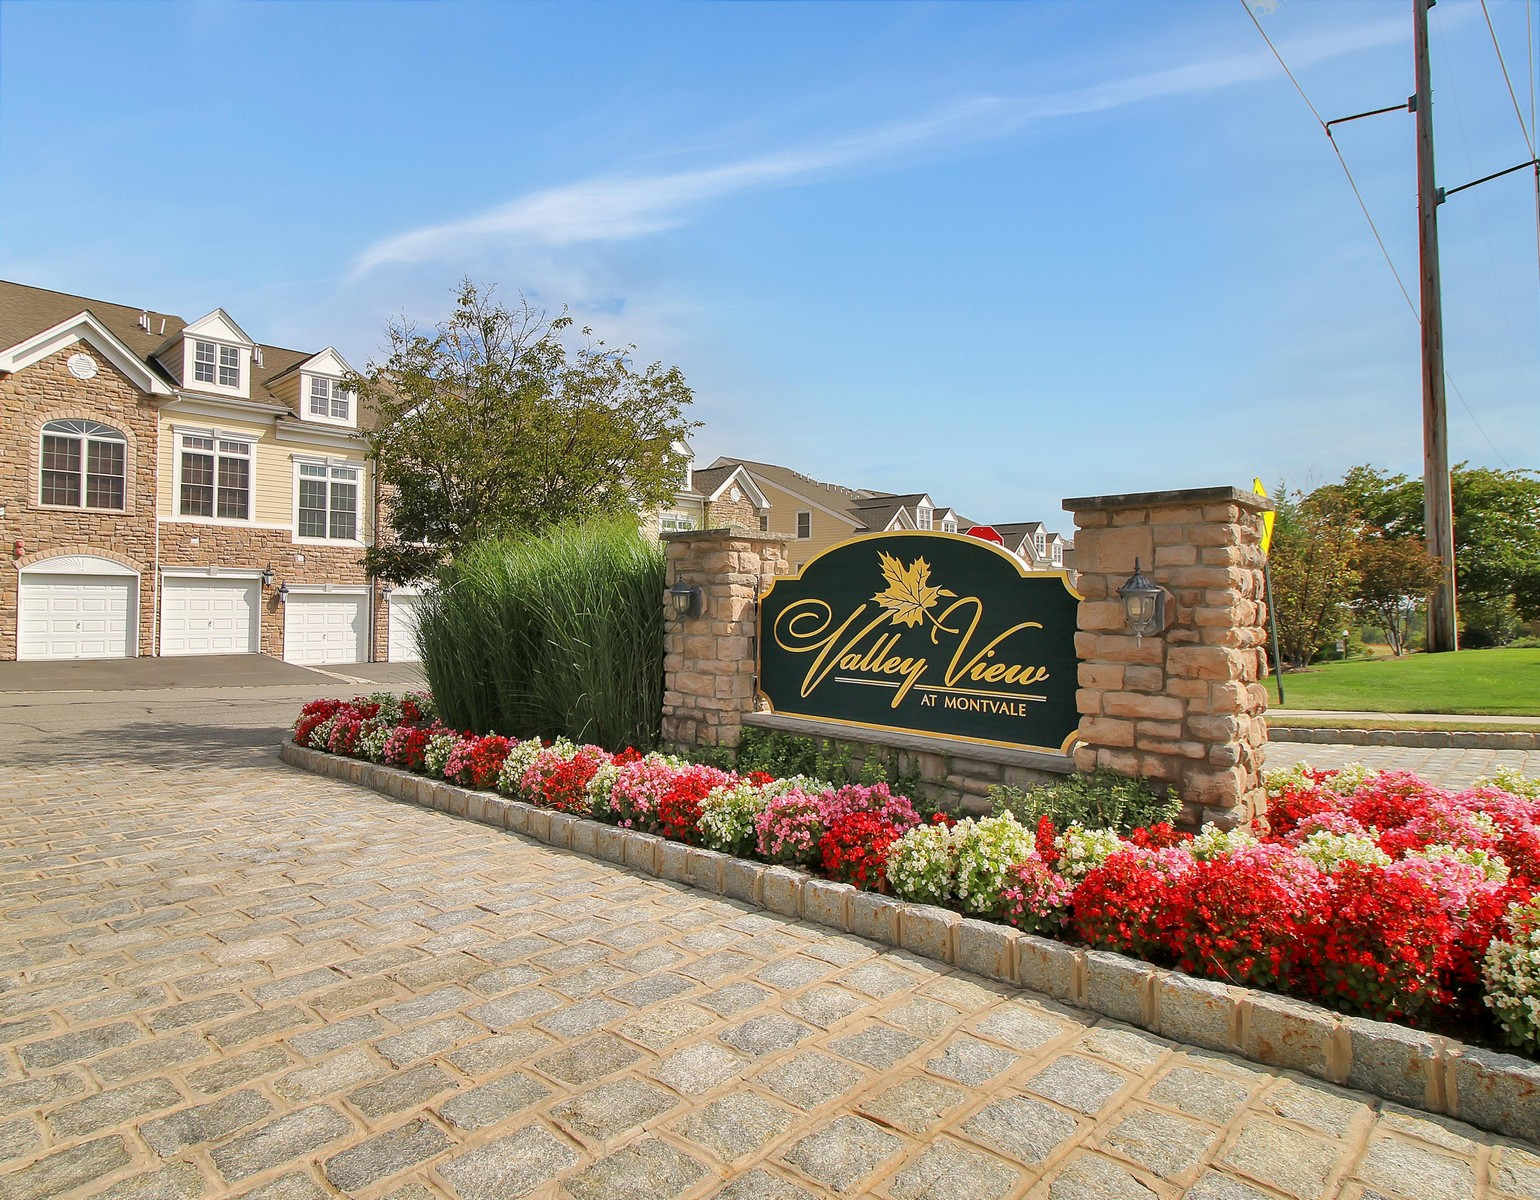 Townhouse for Sale at Tastefully Decorated Townhome. 47A Forshee Circle Valley View at Montvale Montvale, 07645 United States